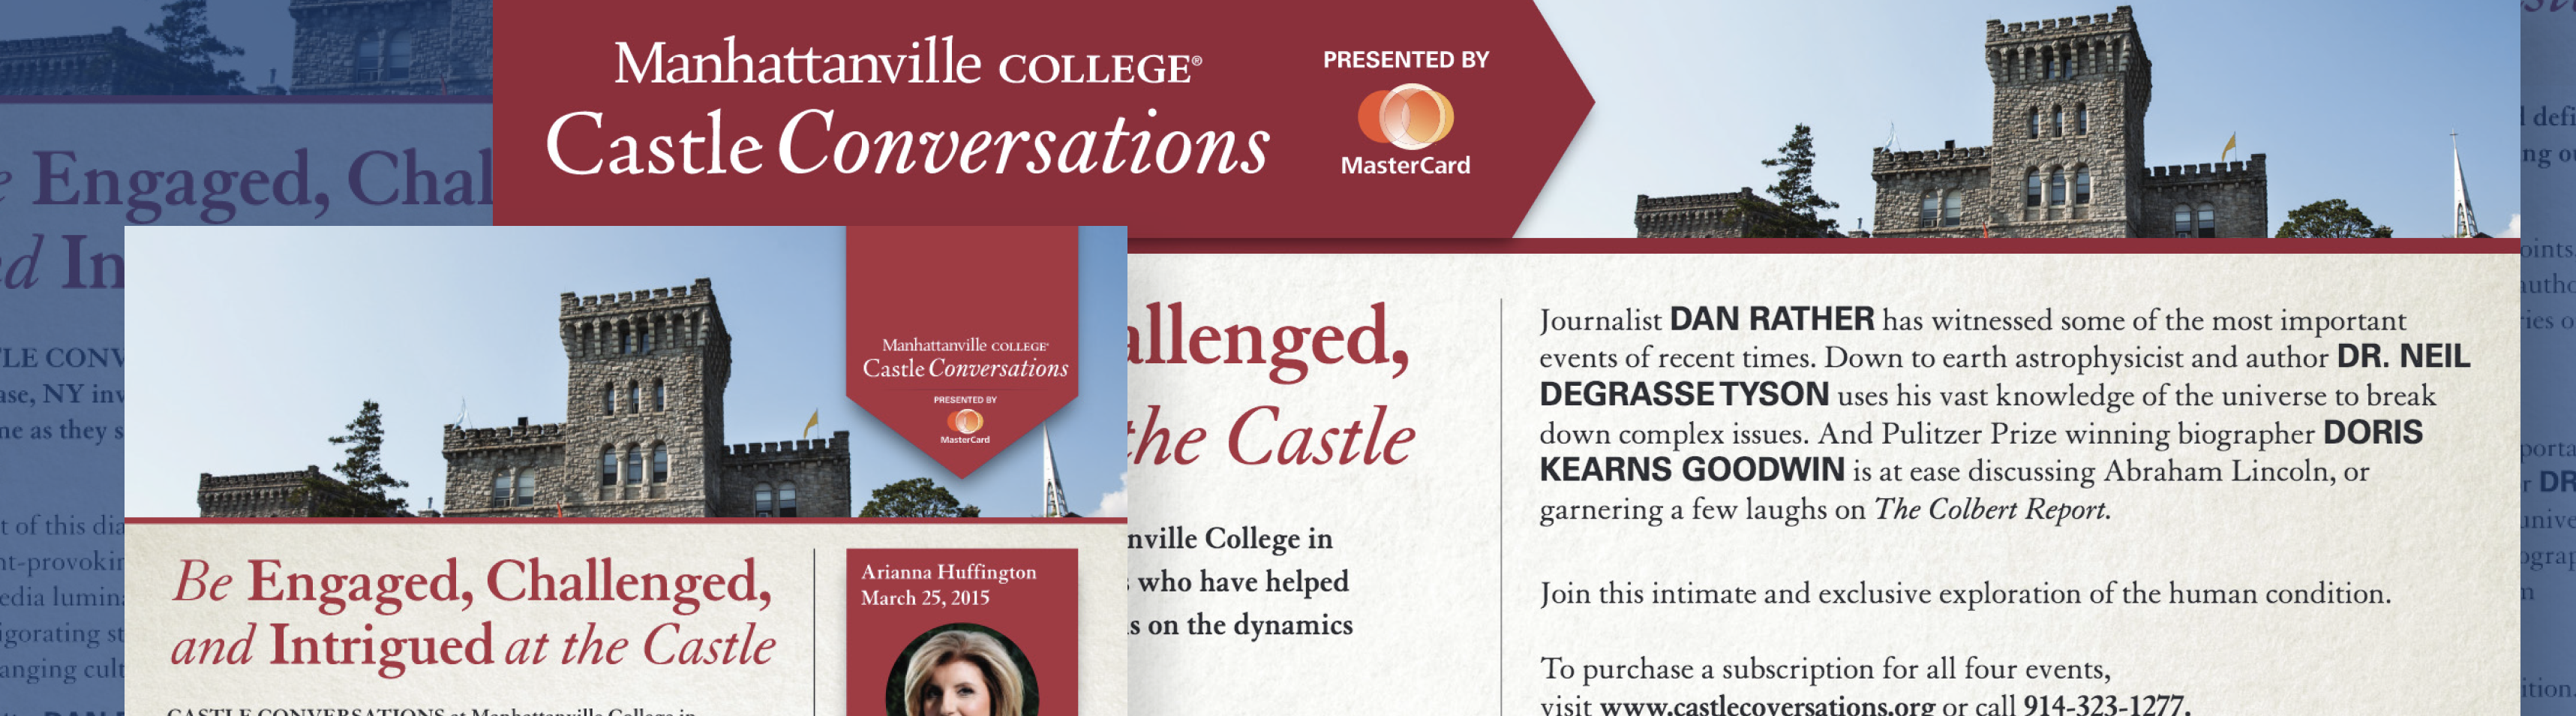 Co Communications Castle Conversations Banner